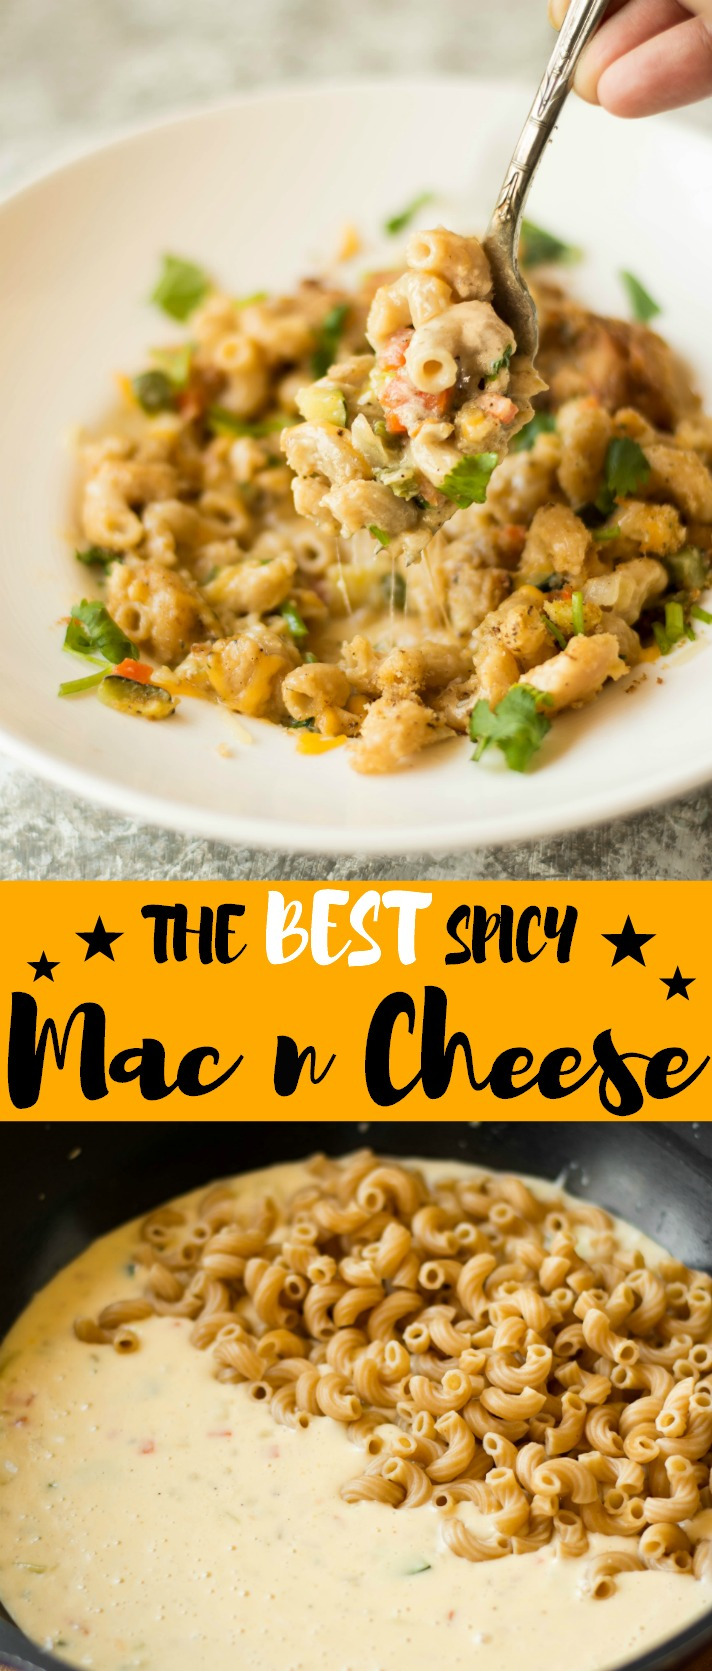 This Spicy Mac n Cheese is made with 4 kinds of cheese, veggies & flavored with Jalapeno, Cumin and Nutmeg! Not your everyday meal, people!